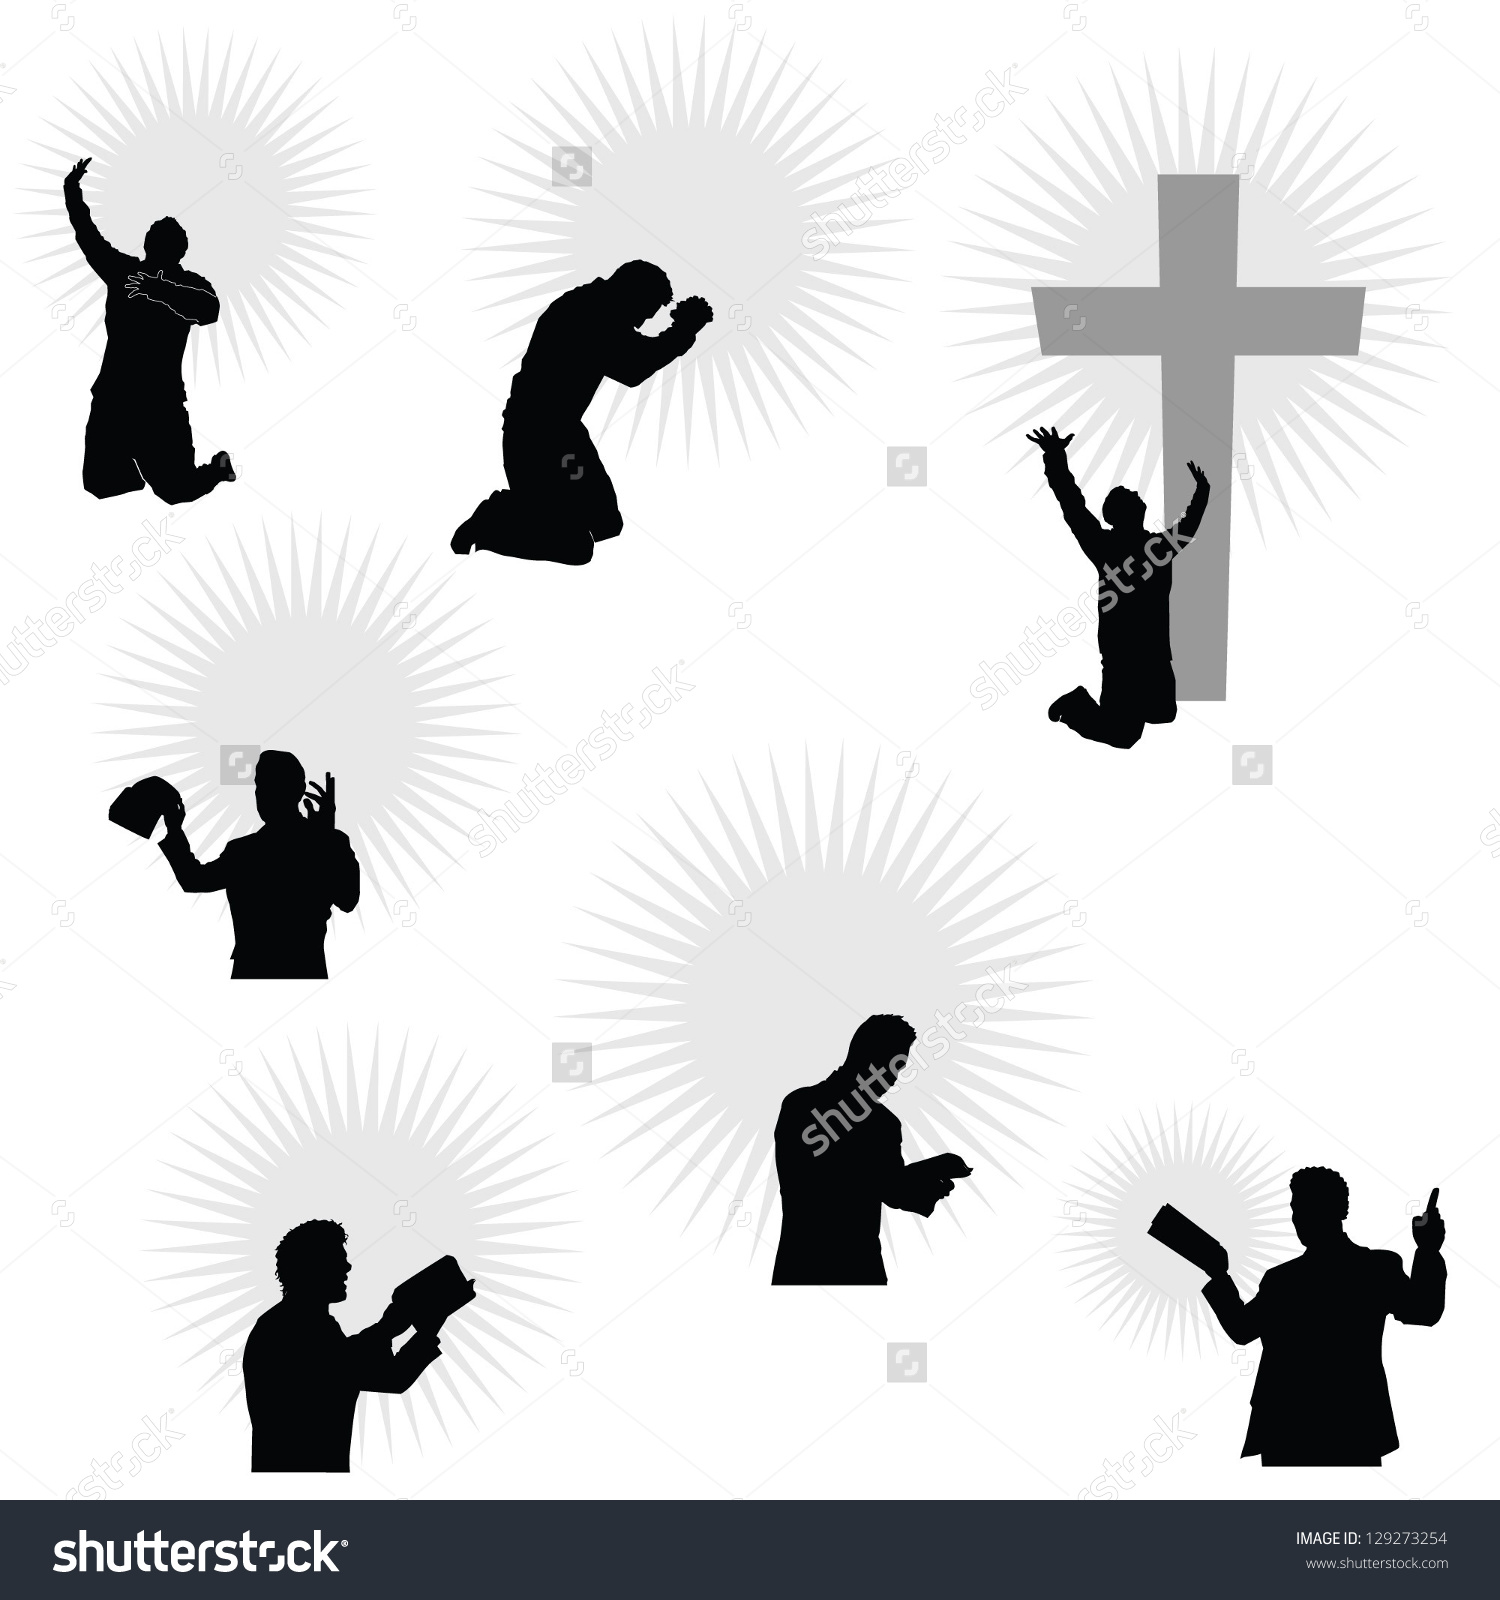 Man On His Knees Praying Holding Stock Vector 129273254.